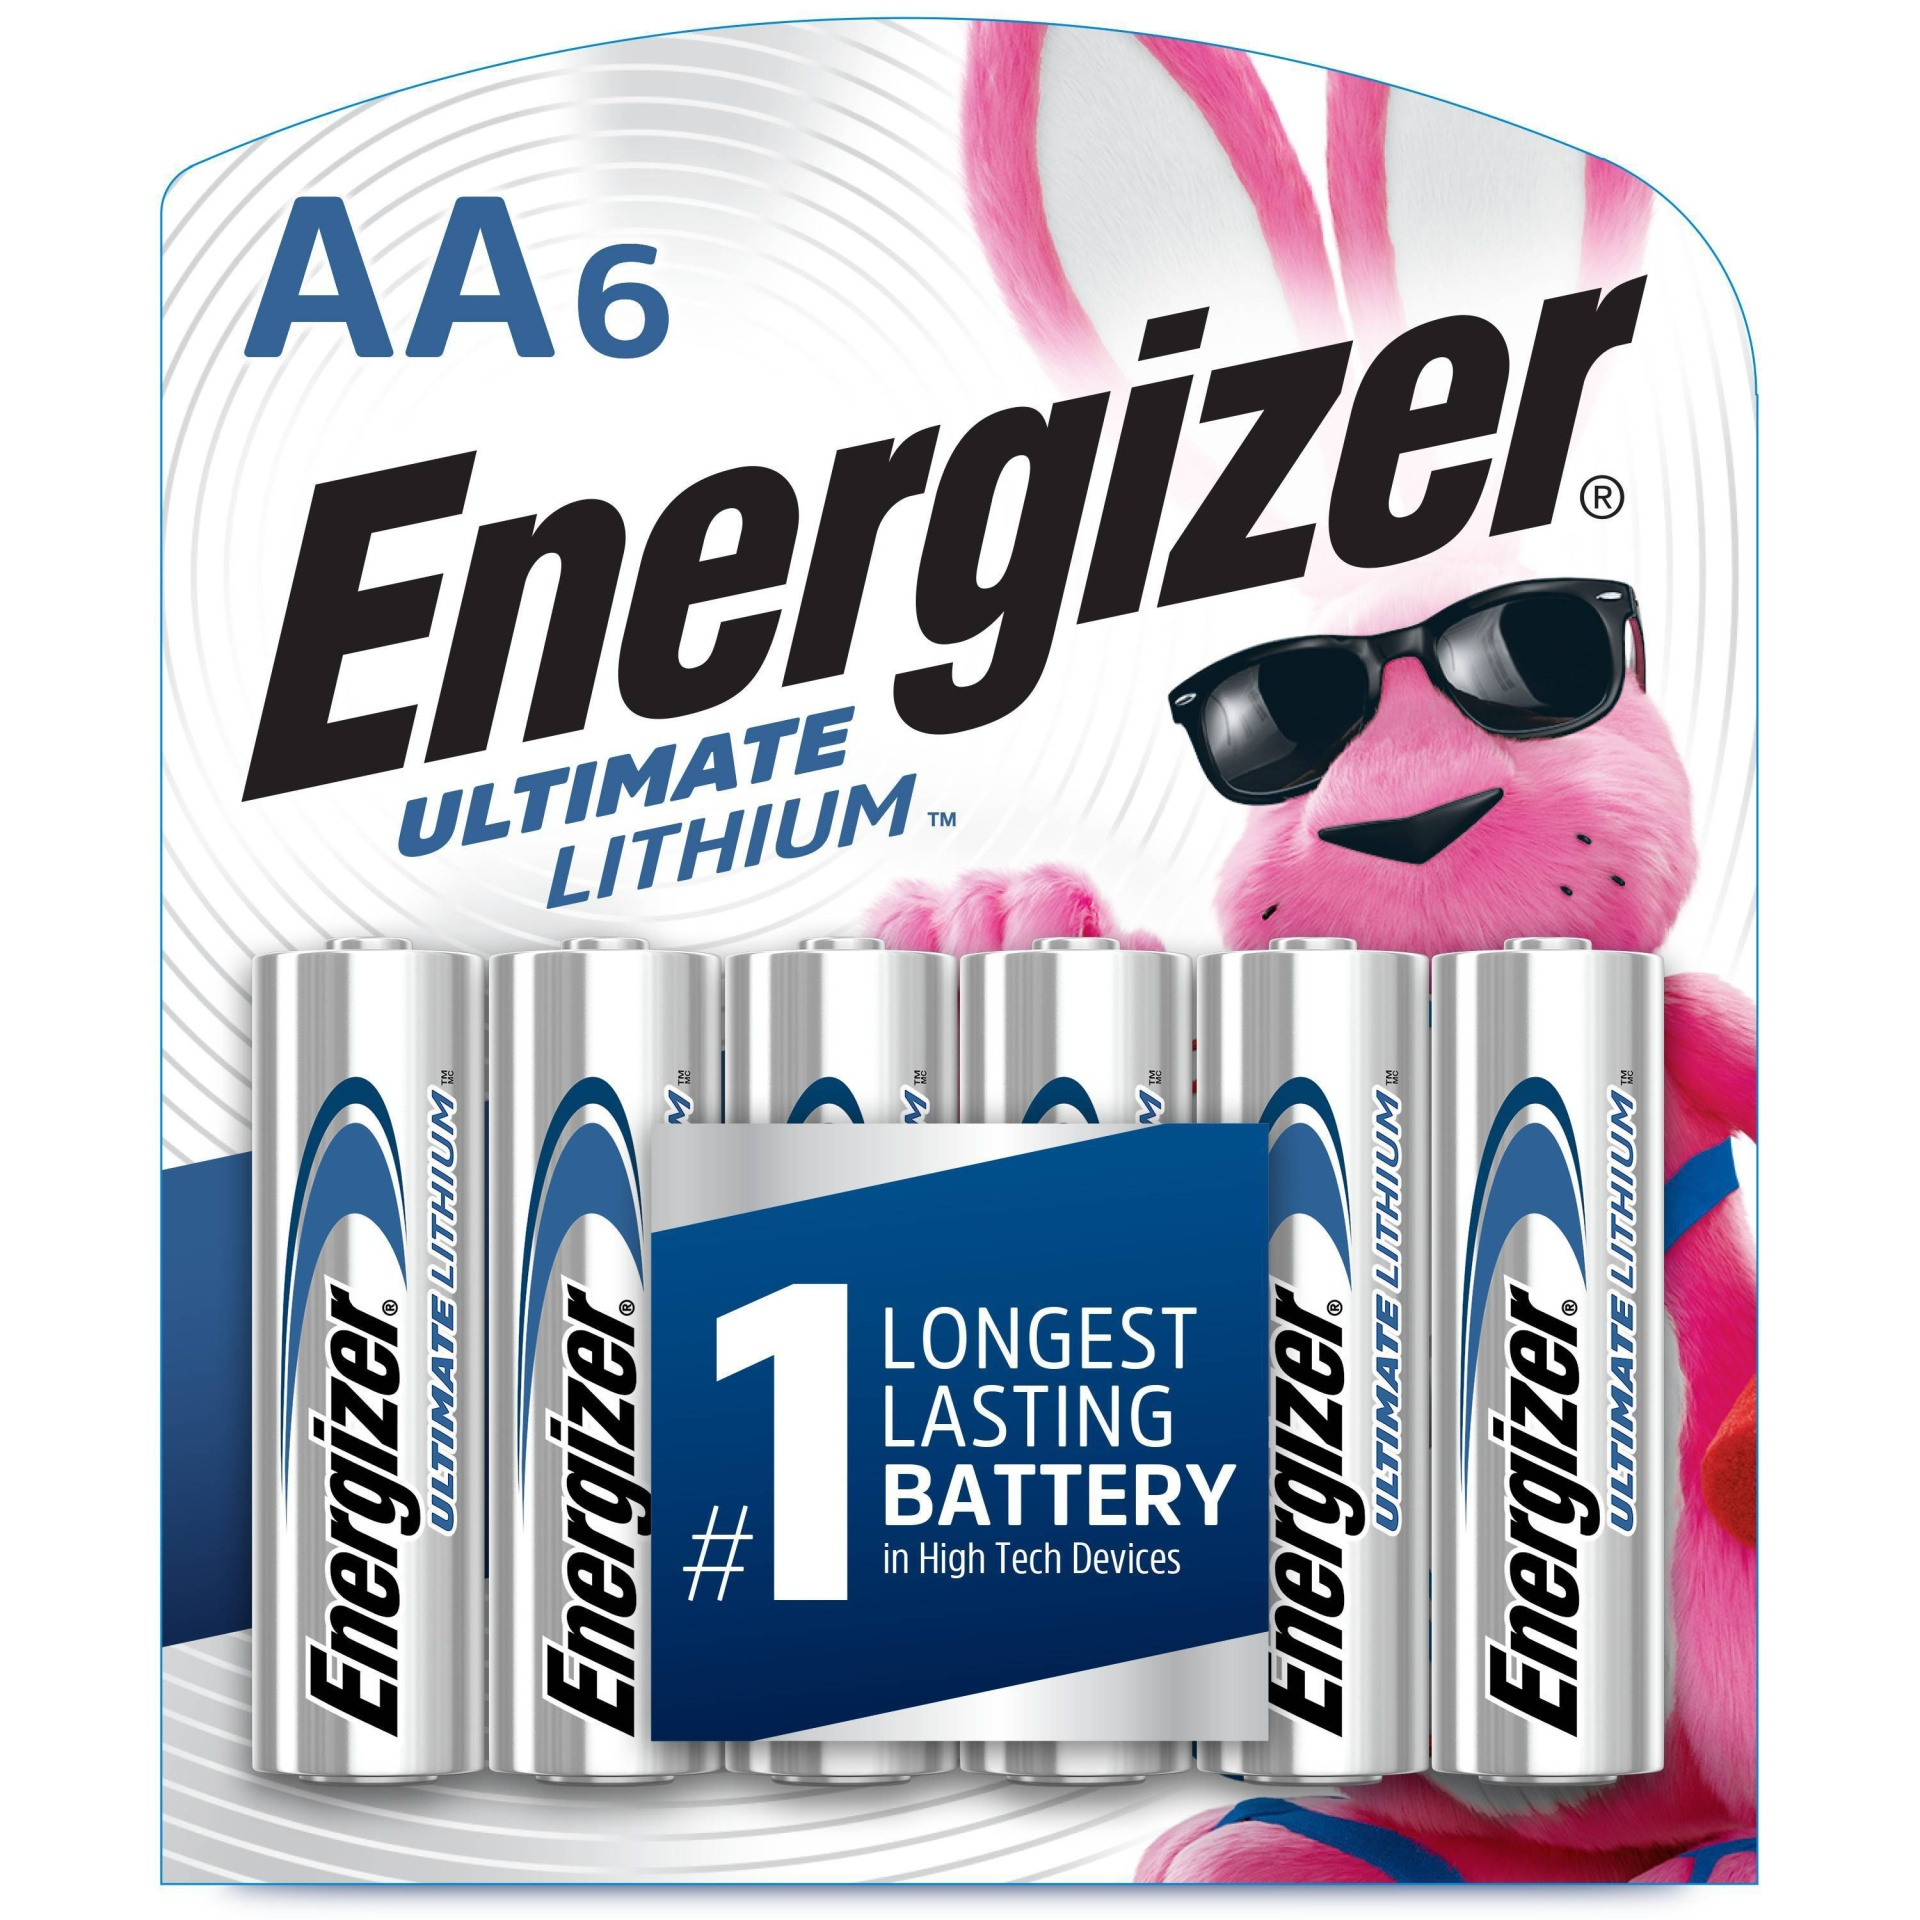 slide 1 of 5, Energizer Ultimate Lithium AA Batteries,